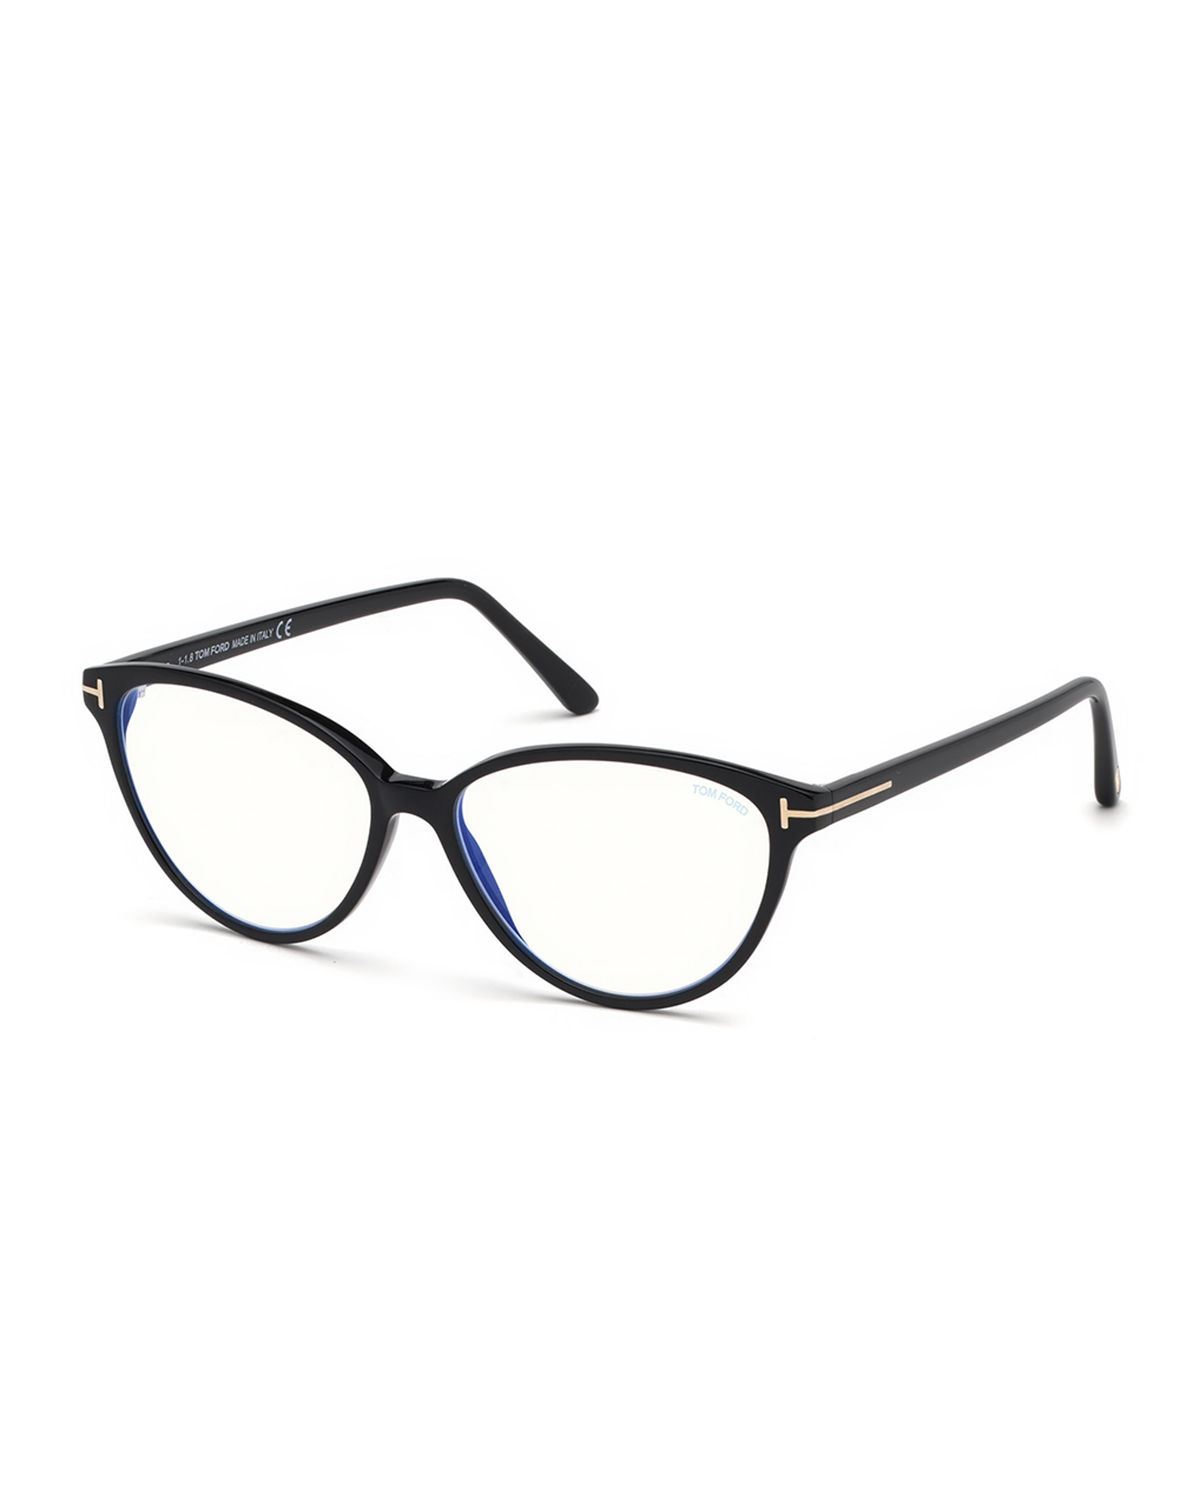 ea765fa45c TOM FORD Cat-Eye Acetate Optical Frames